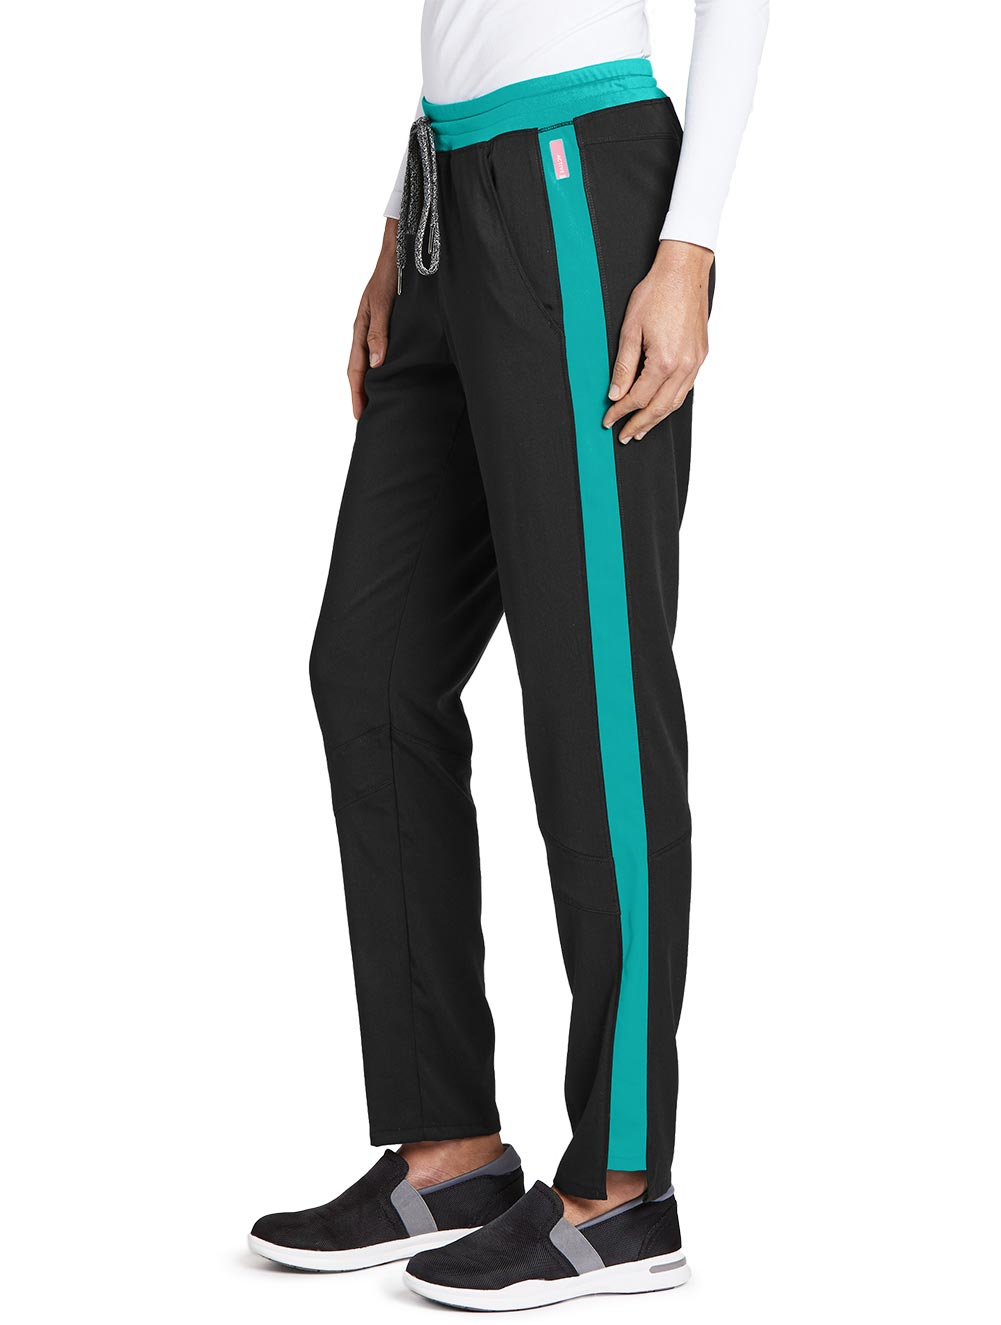 'Grey's Anatomy Spandex Stretch' Color Block Cargo Pant